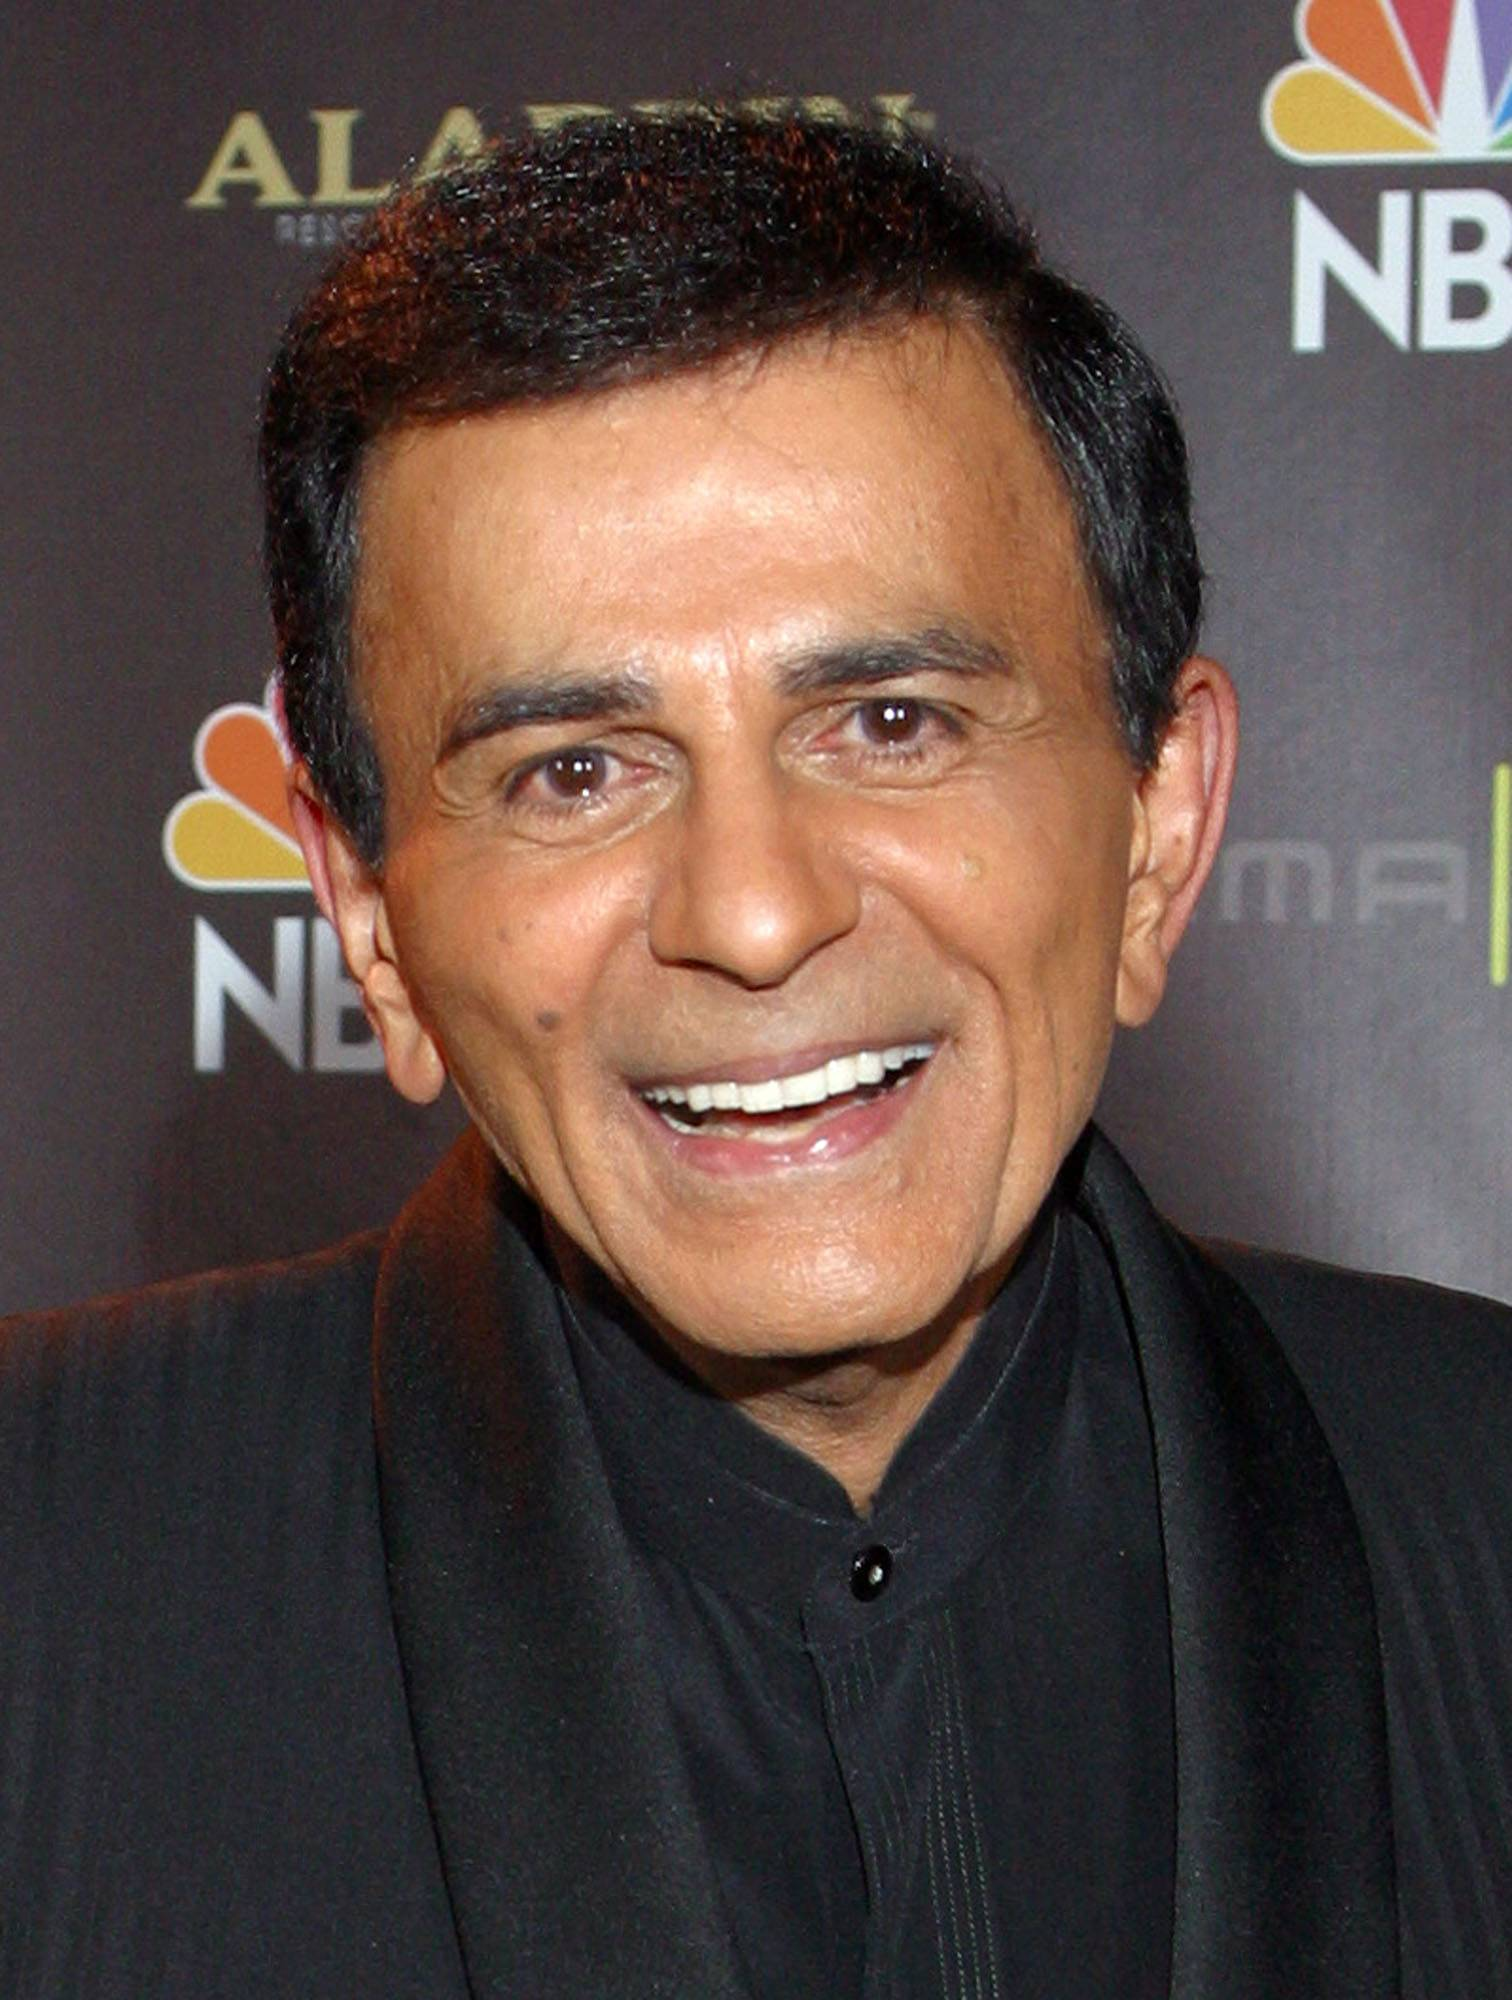 Casey Kasem poses for photographers in 2003 after receiving the Radio Icon award during The 2003 Radio Music Awards at the Aladdin Resort and Casino in Las Vegas.